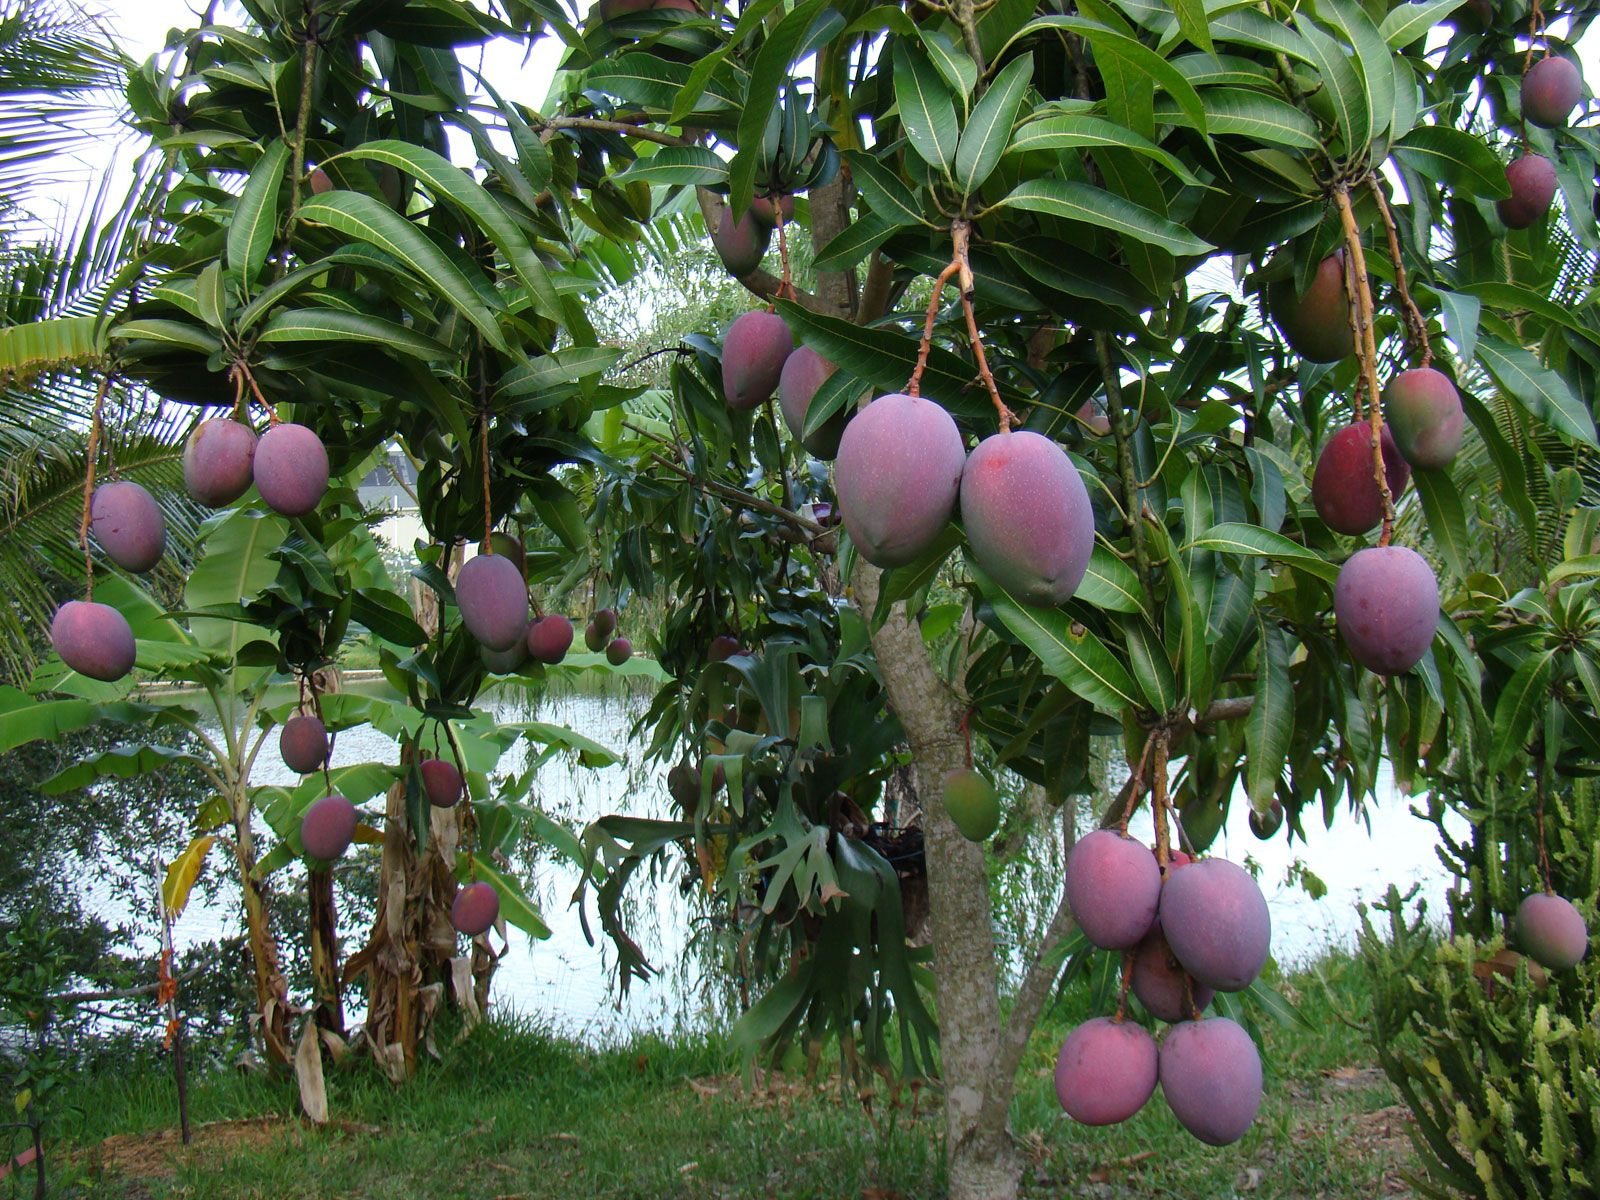 Mango Trees Are So Heavy With Fruit Everywhere In May! On The Street, In